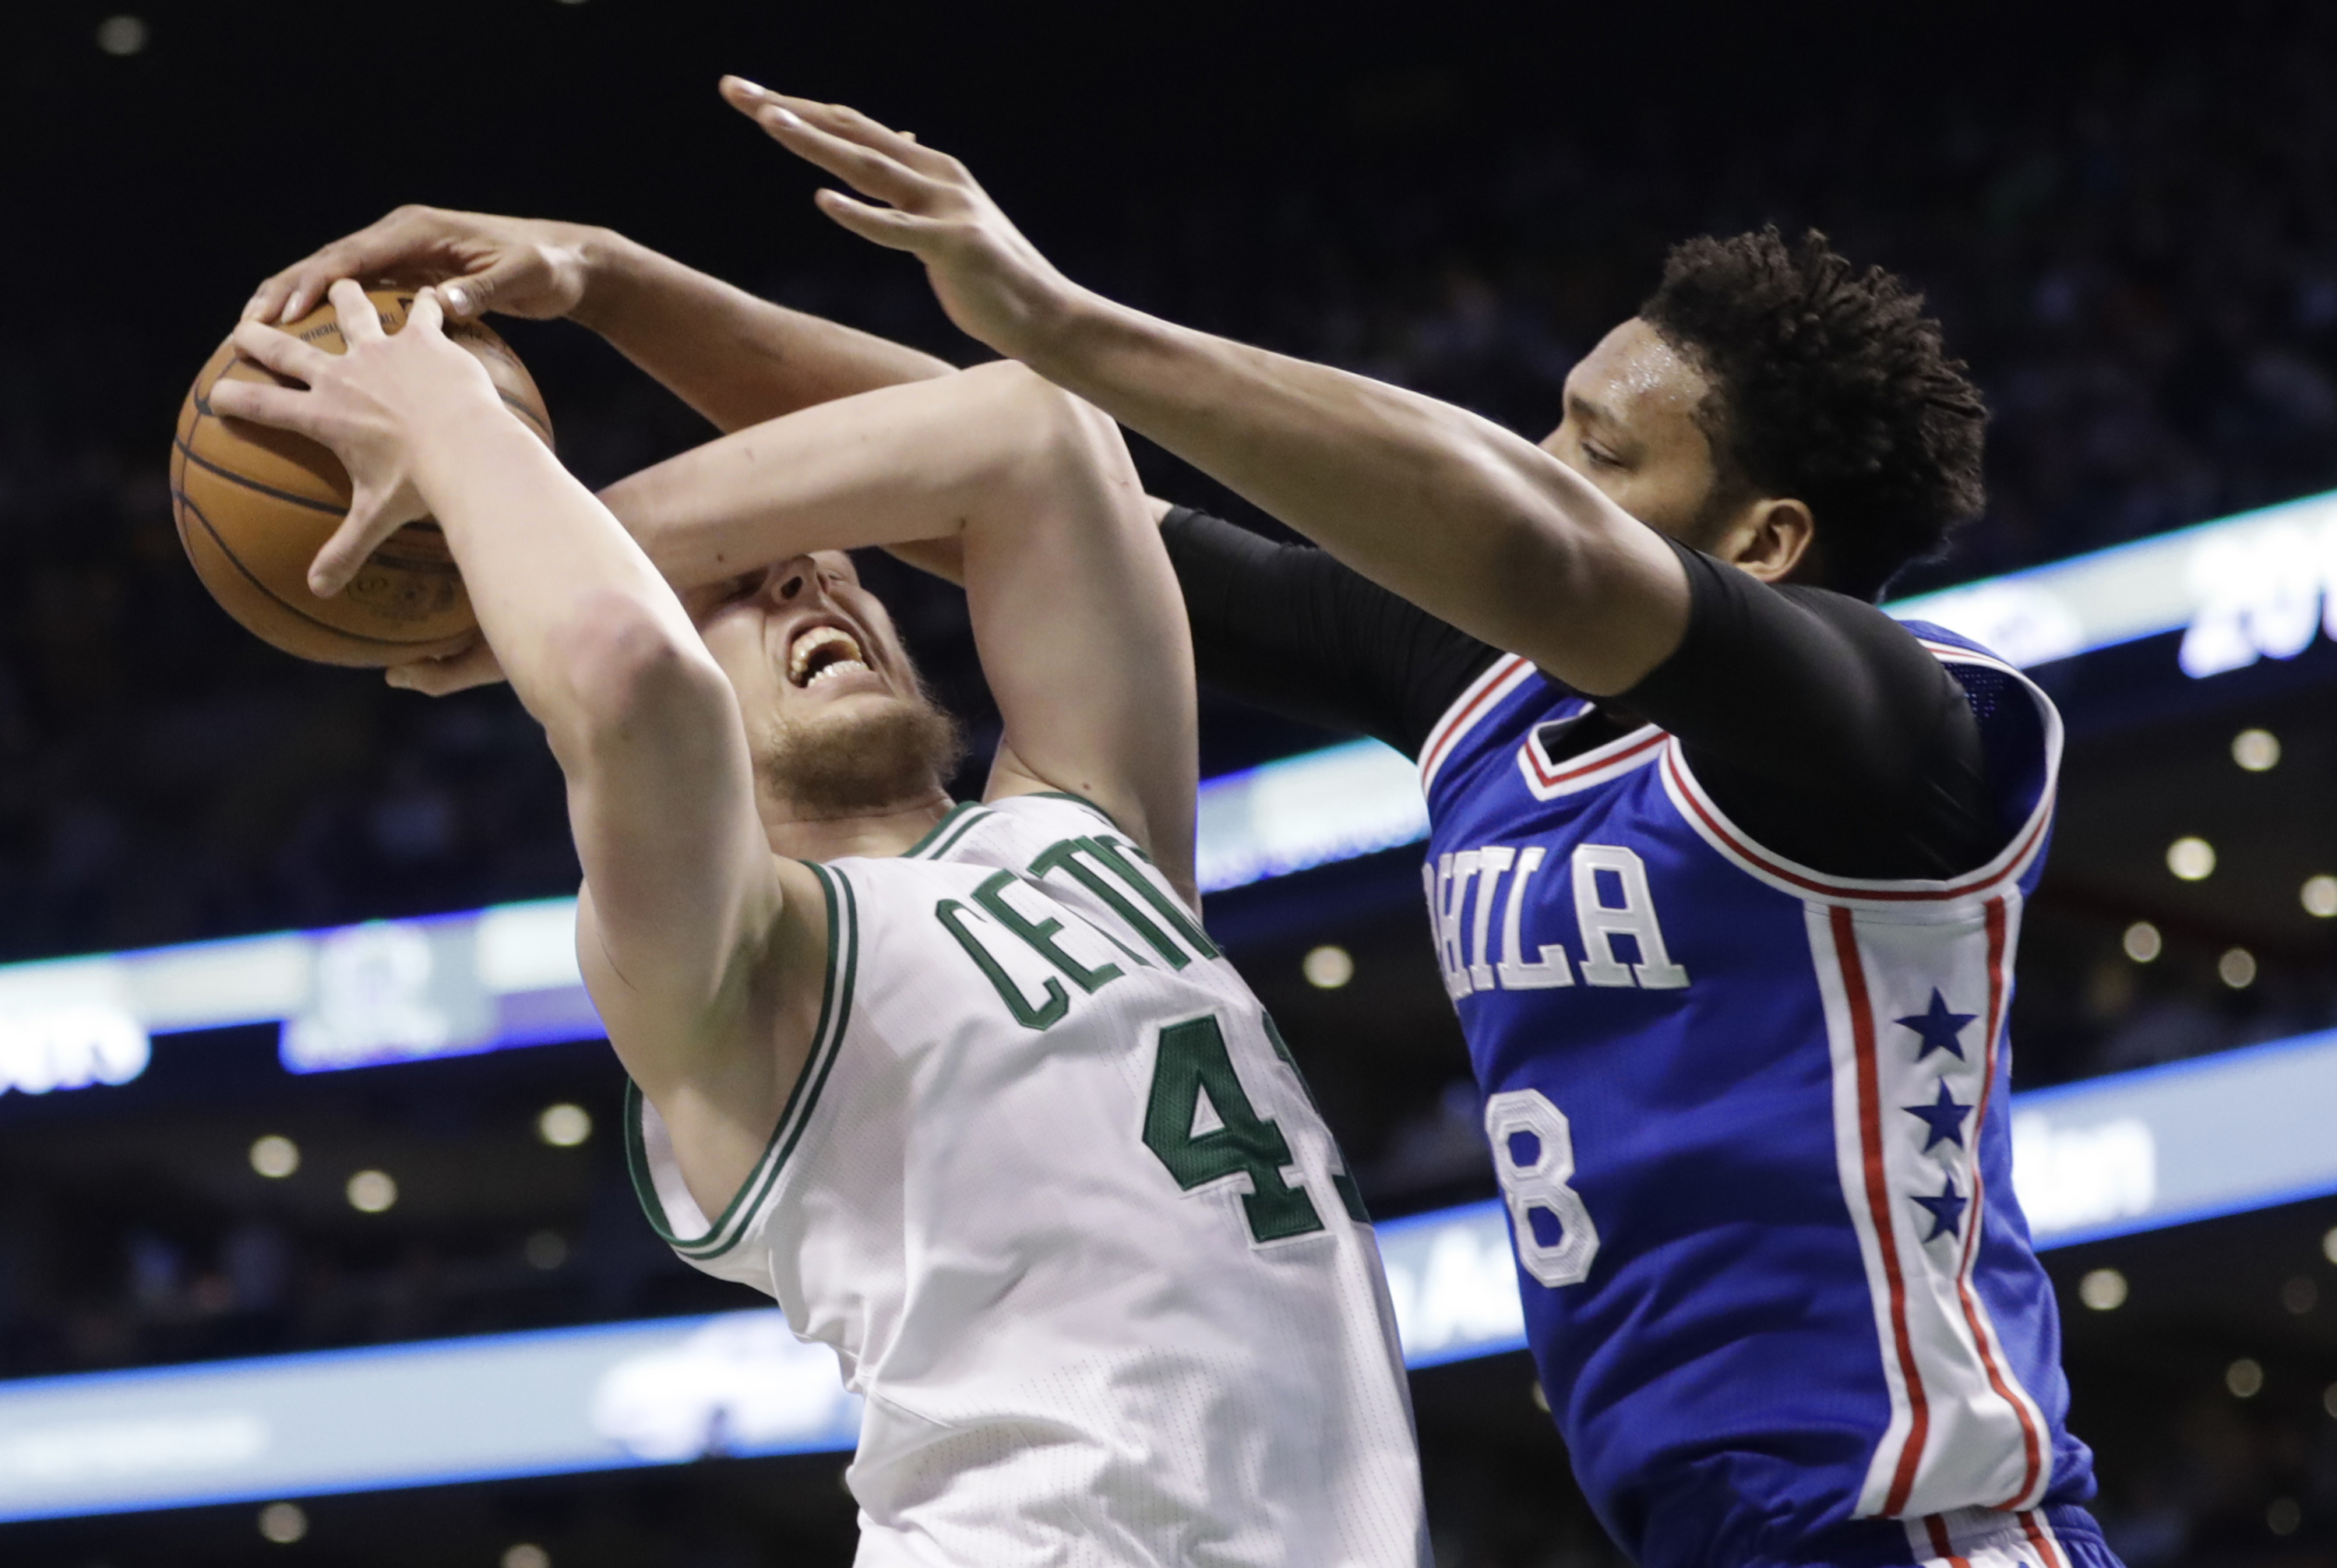 Celtics allow nightmarish late-game rally in 105-99 loss to 76ers